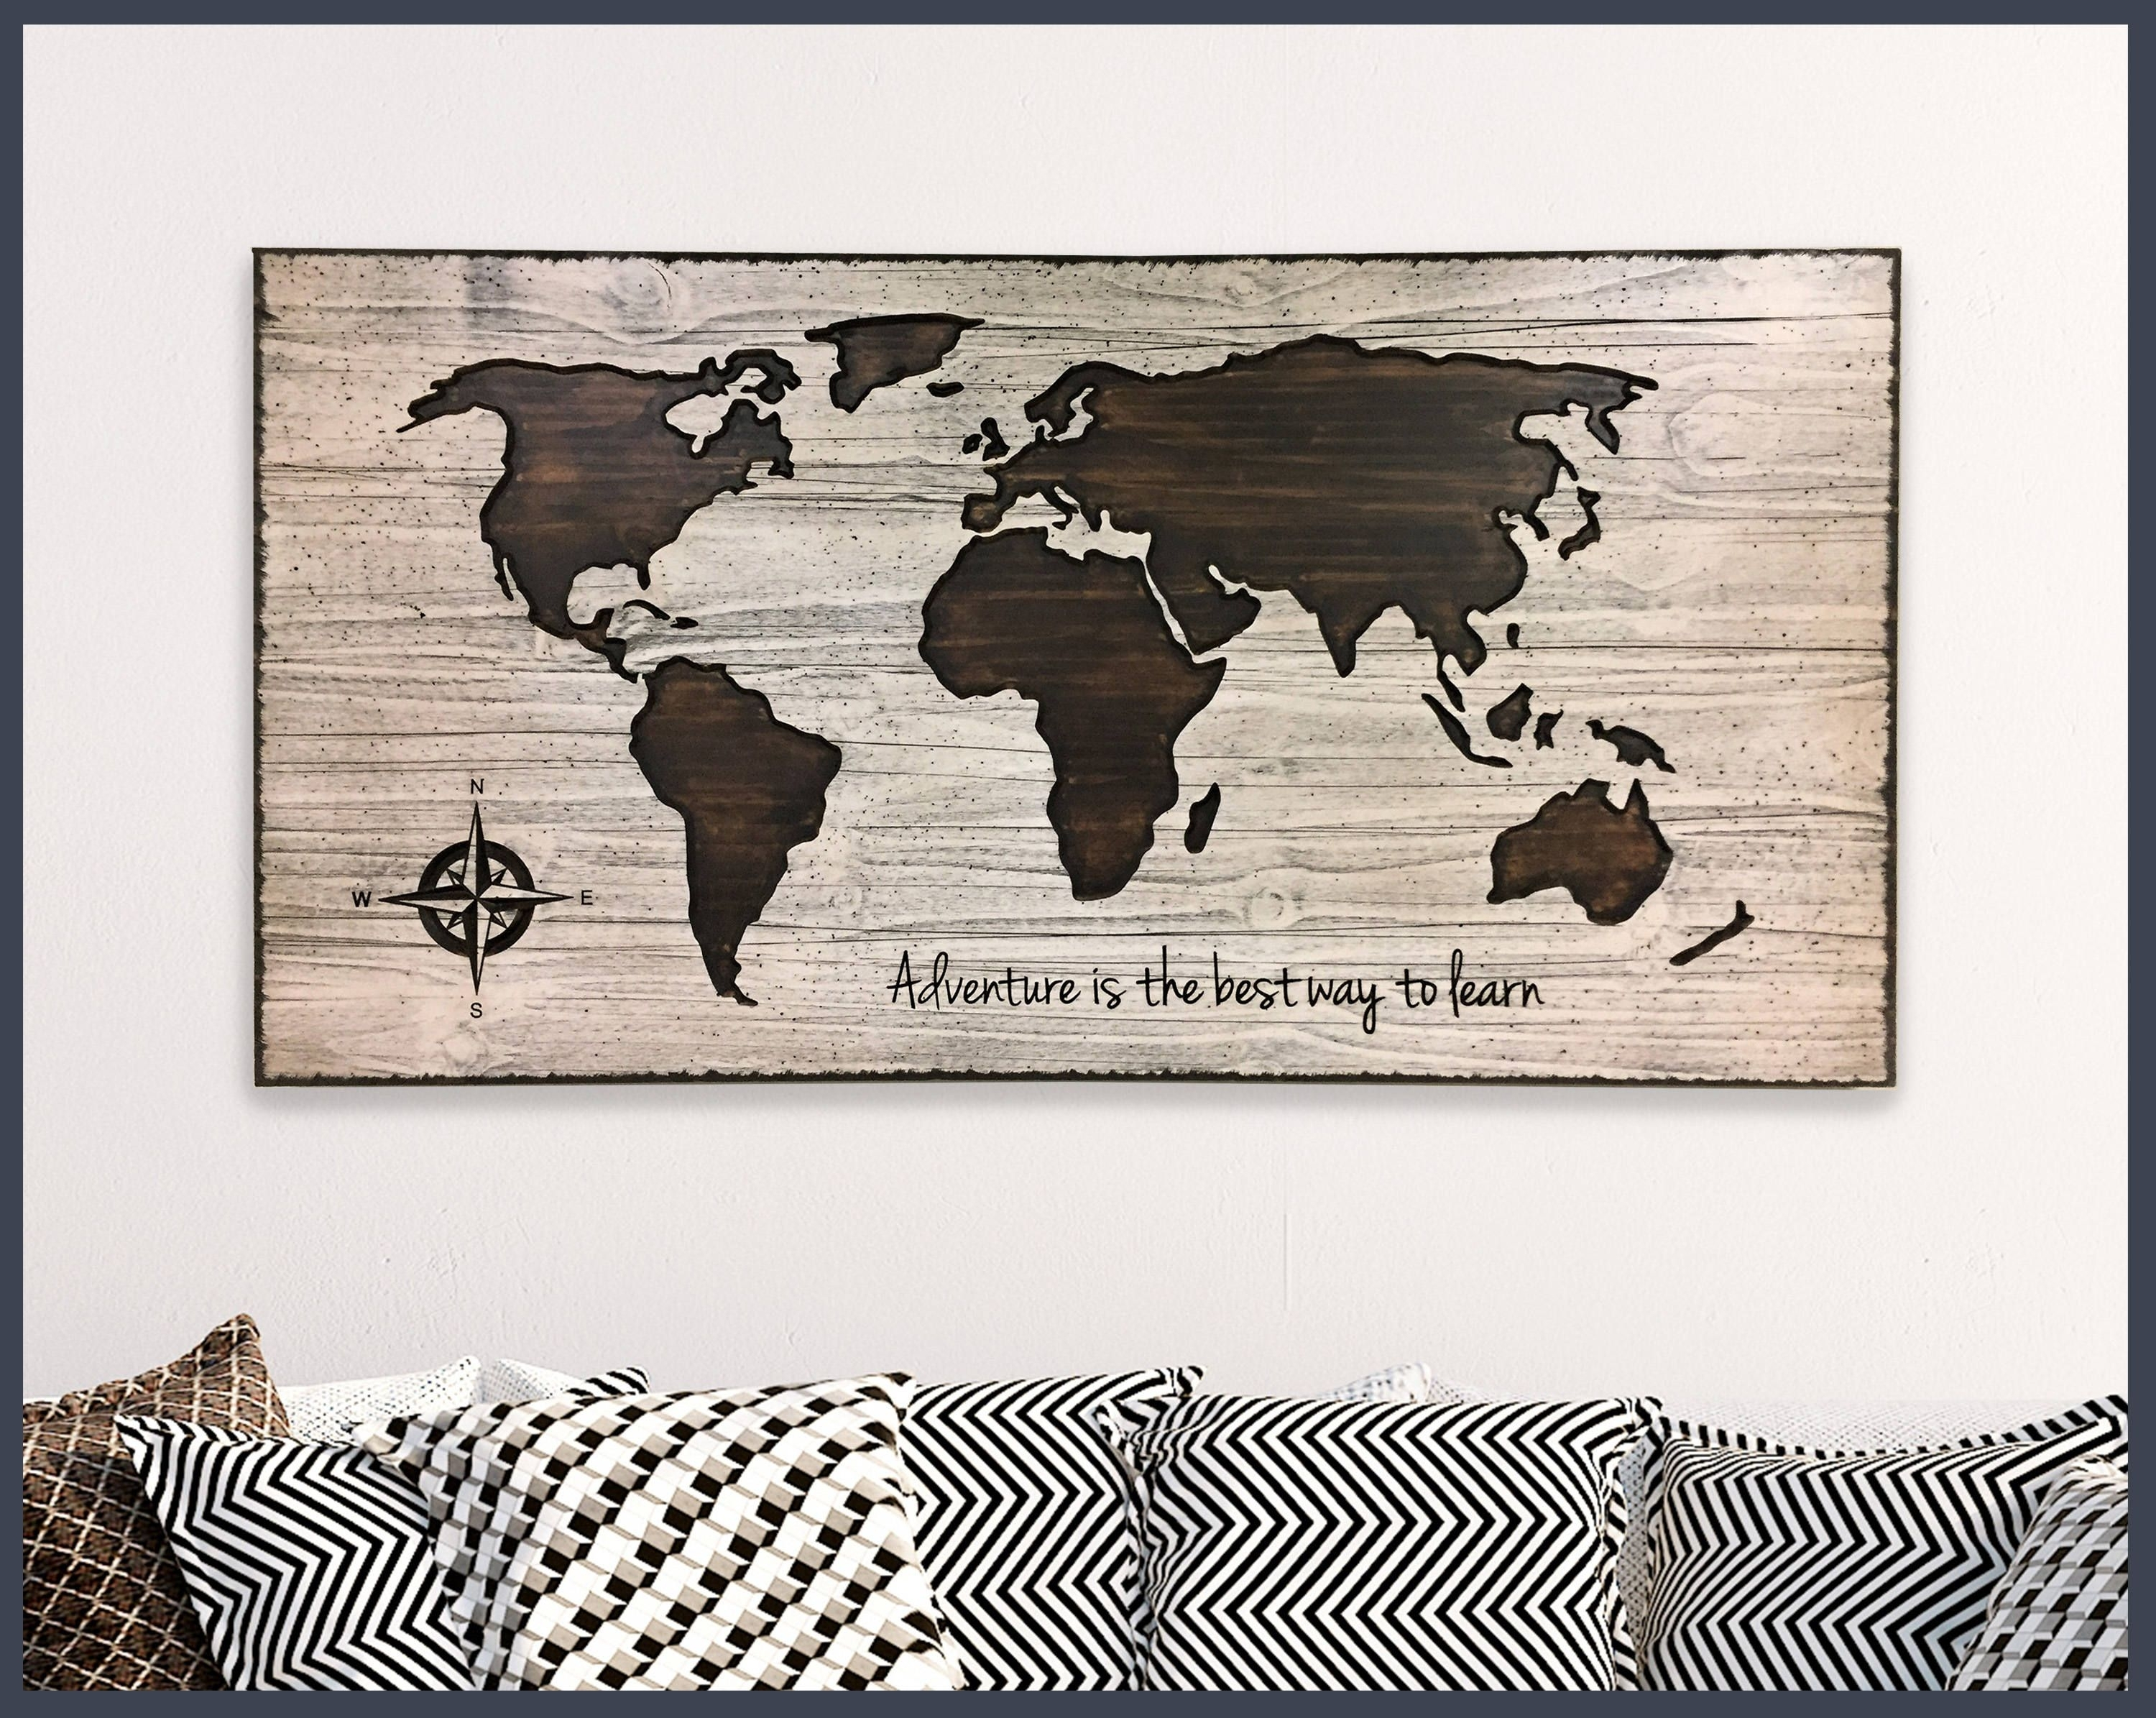 Map Wall Decor, Home Wall Decor, Wood Wall Art, Wooden Map, World Within Most Up To Date Map Of The World Wall Art (View 9 of 20)